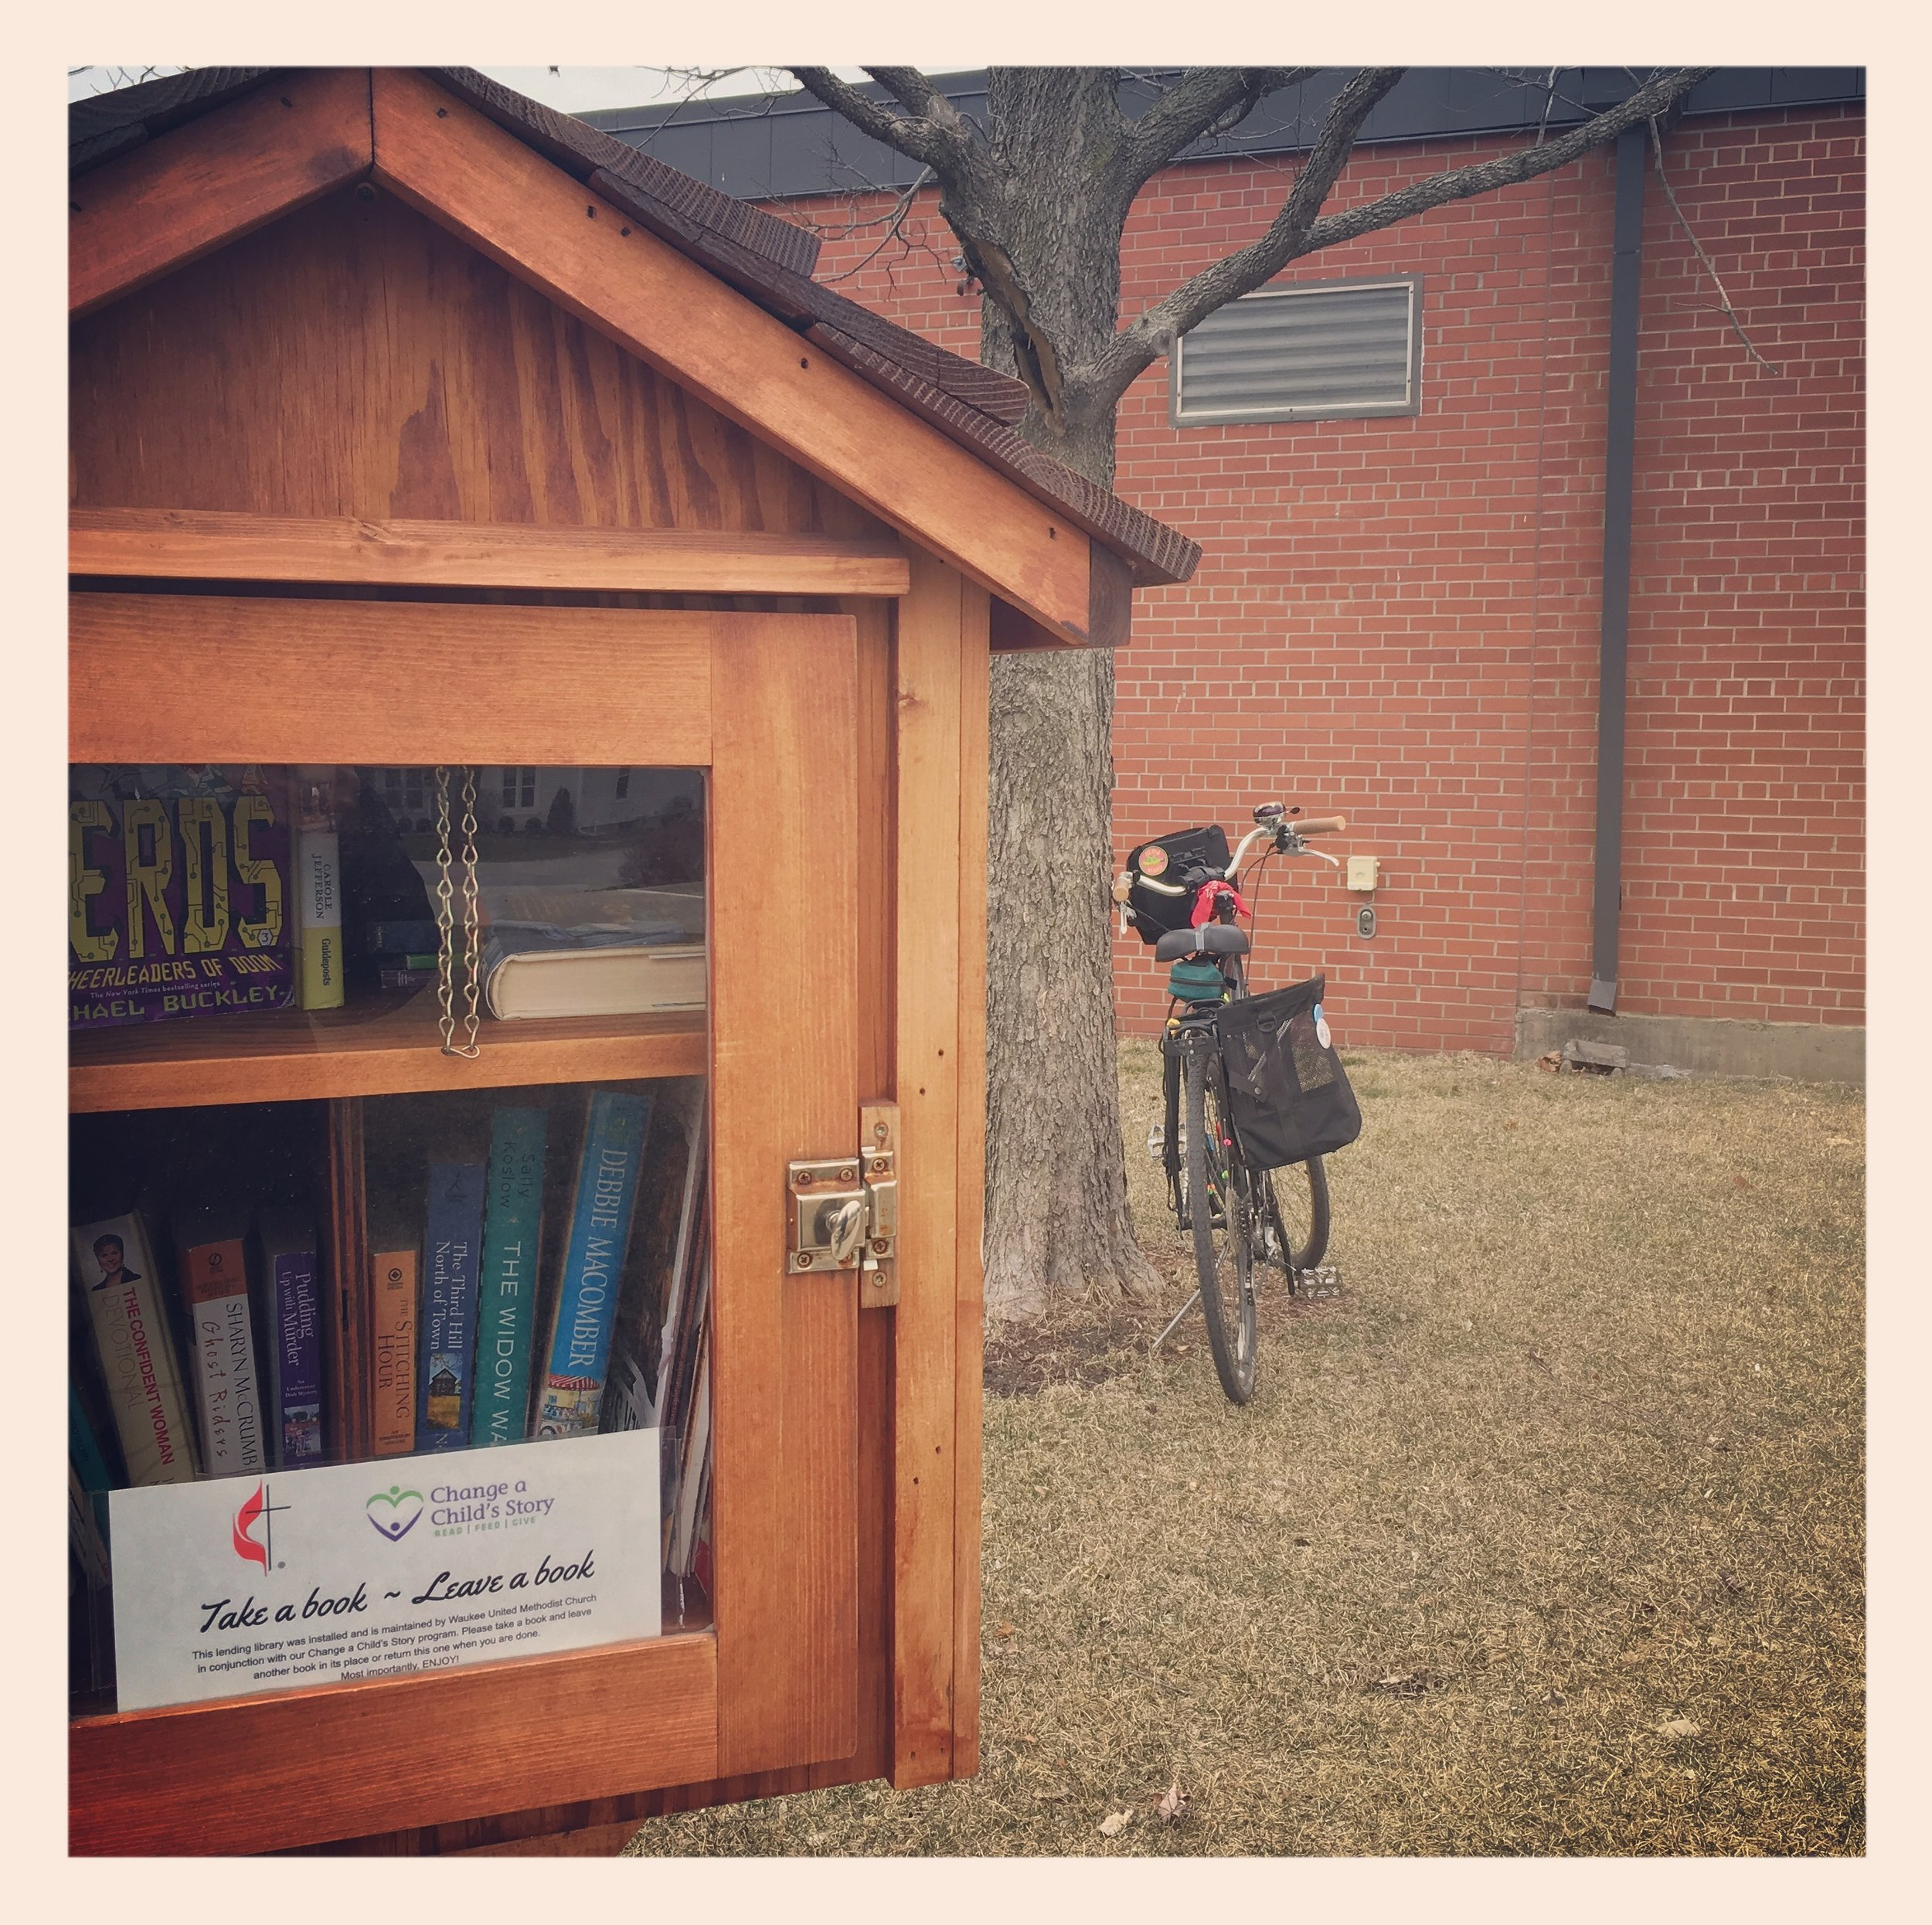 Day 2:  Donated some books to the local little library.